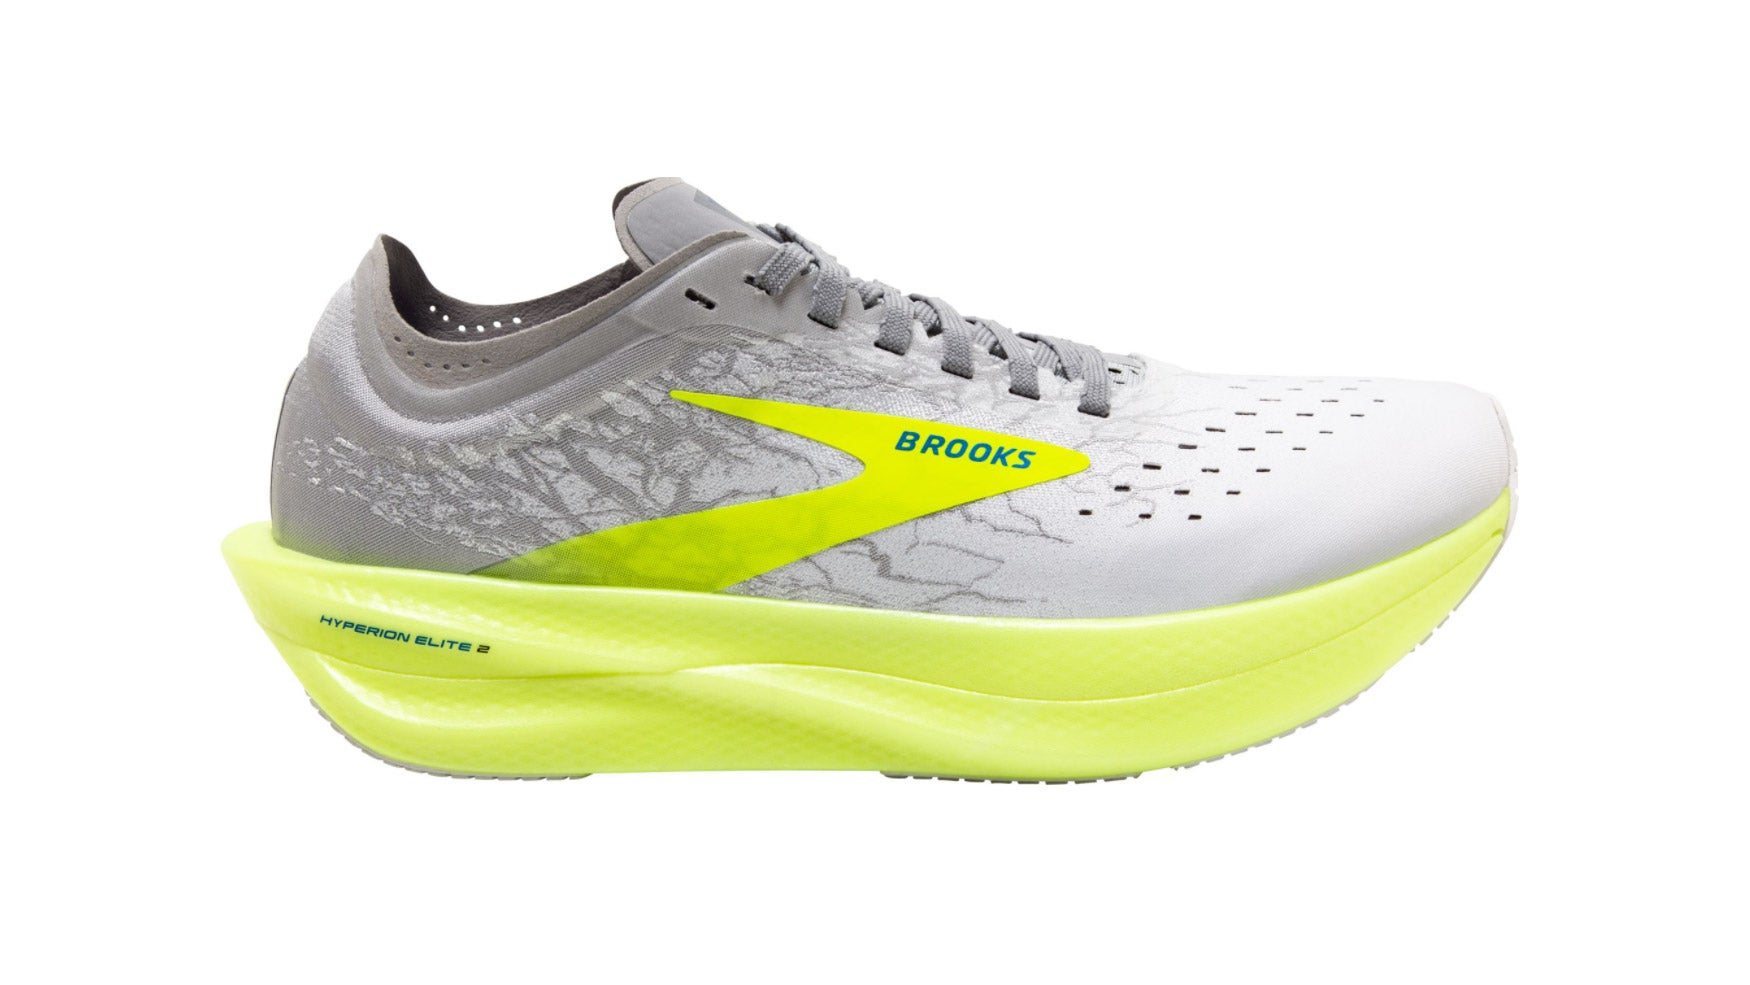 Yellow and gray Brooks Hyperion Elite 2